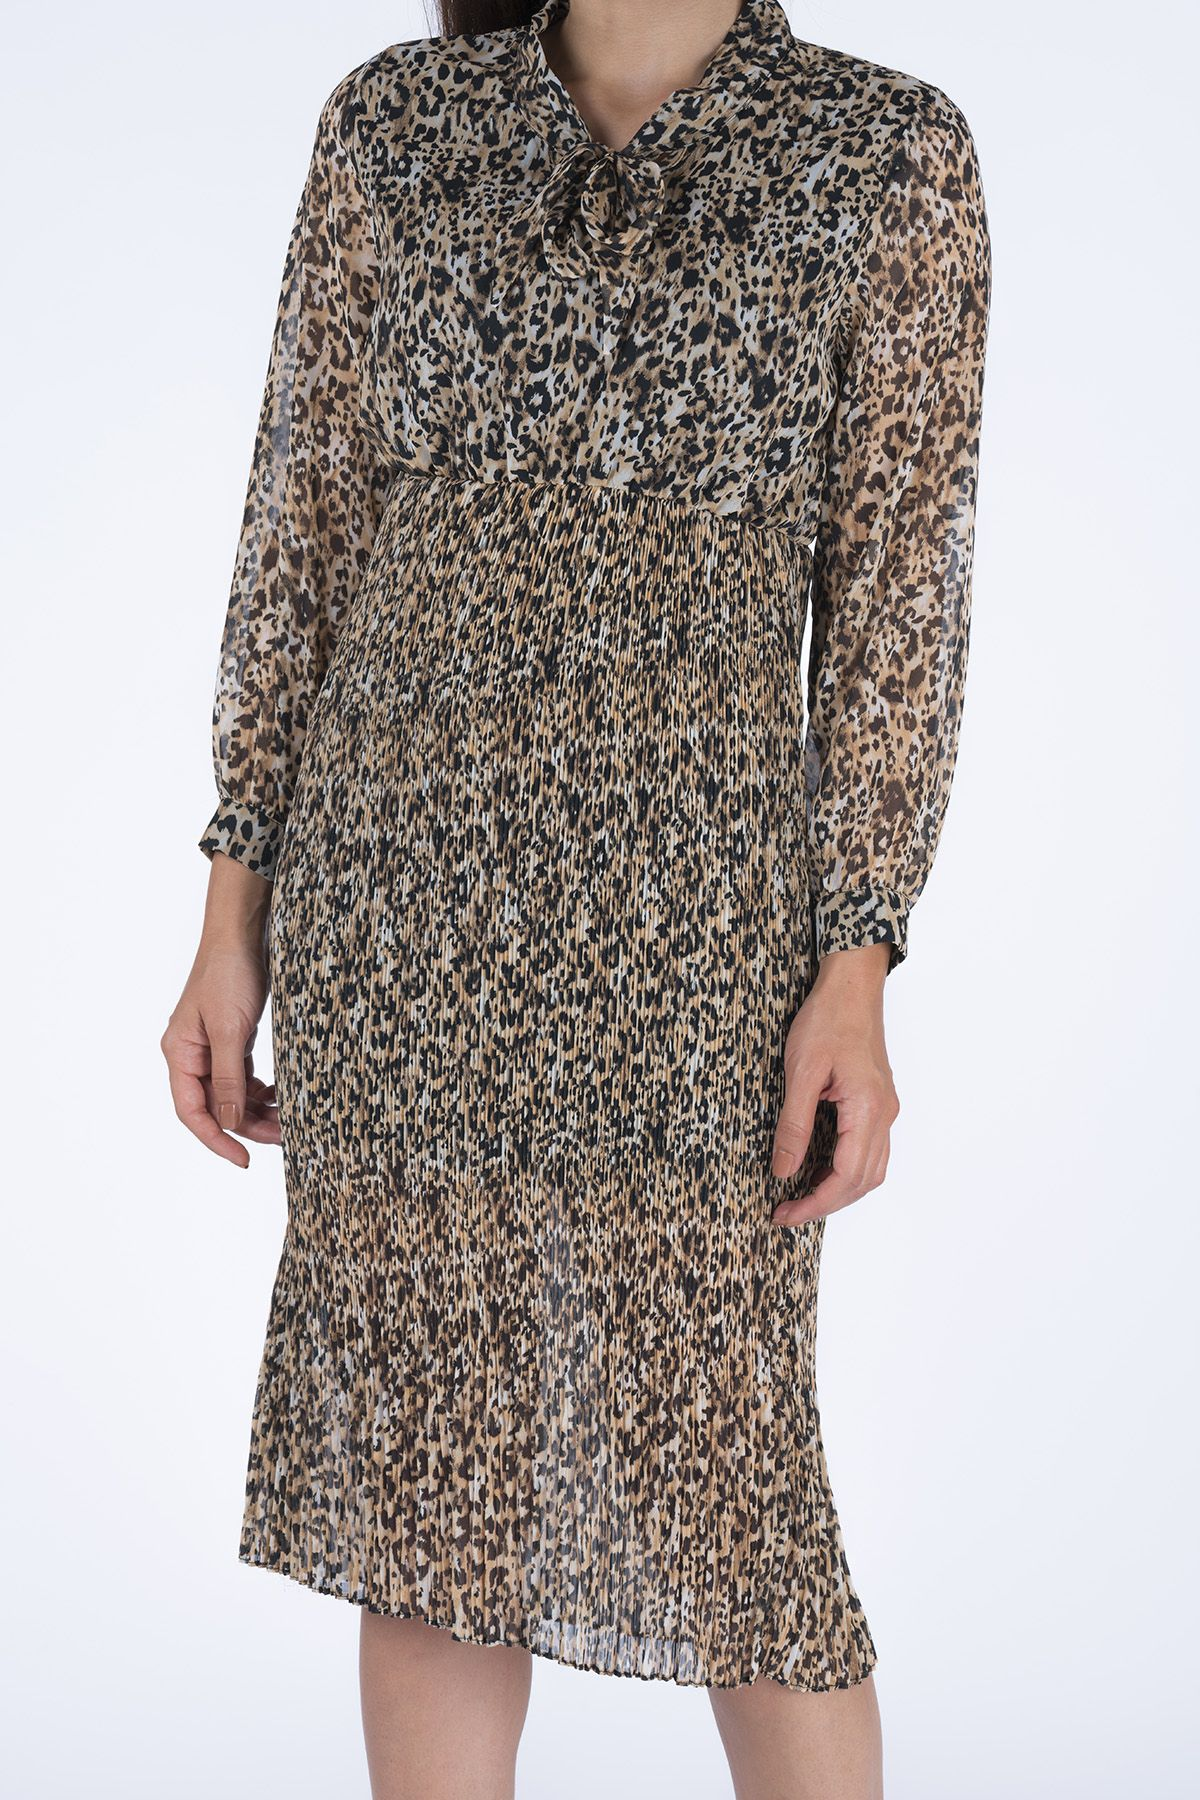 Belted Leopard Patterned Women's Dress 20K31030 Natural